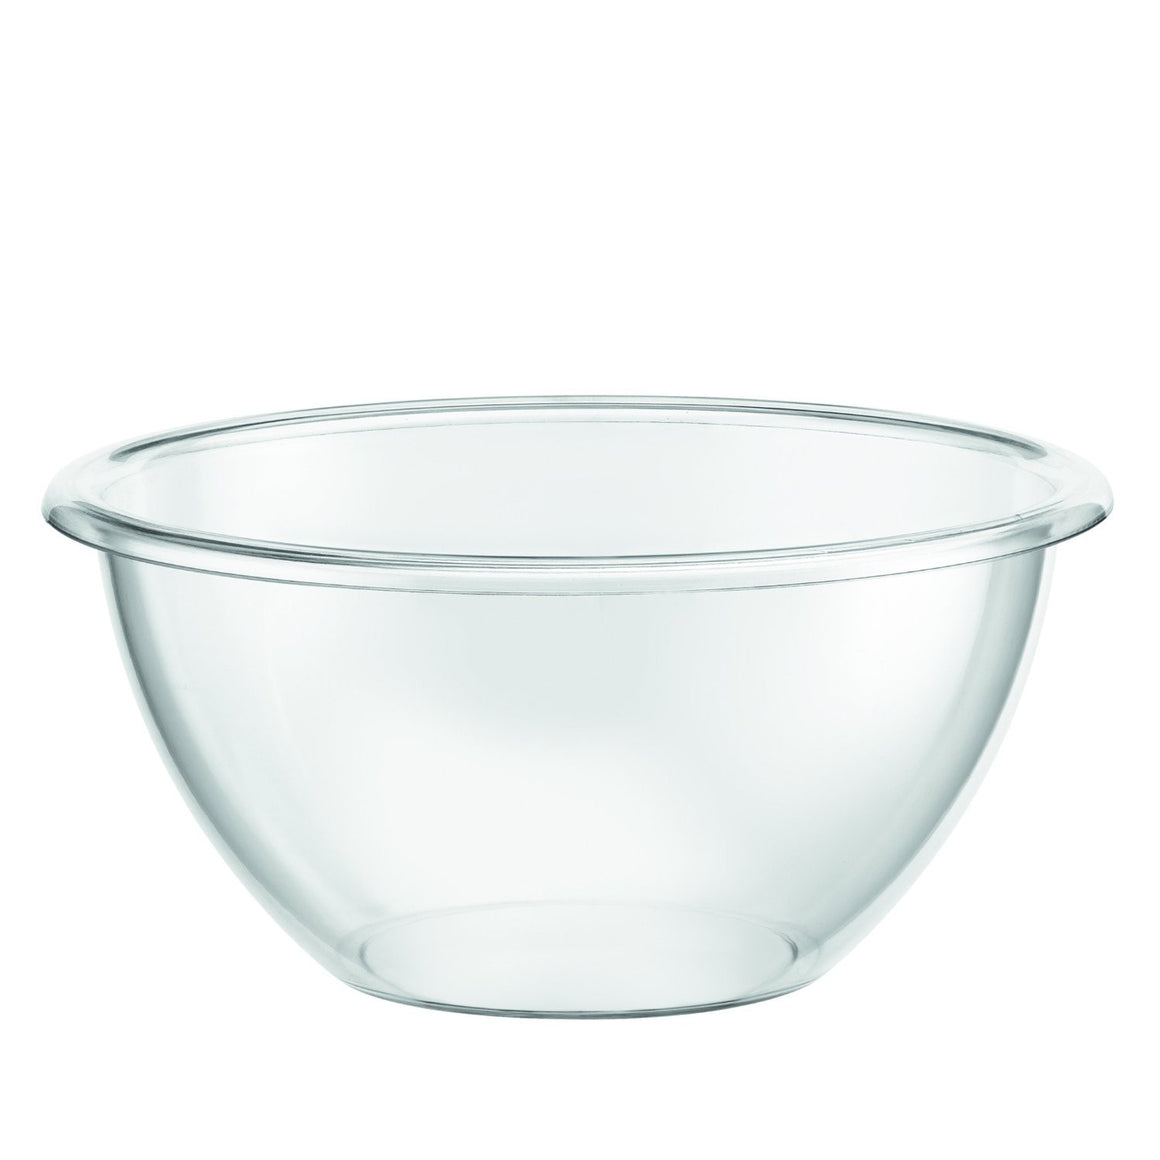 "RUBBERMAID 23"" SALAD BOWL CLEAR"